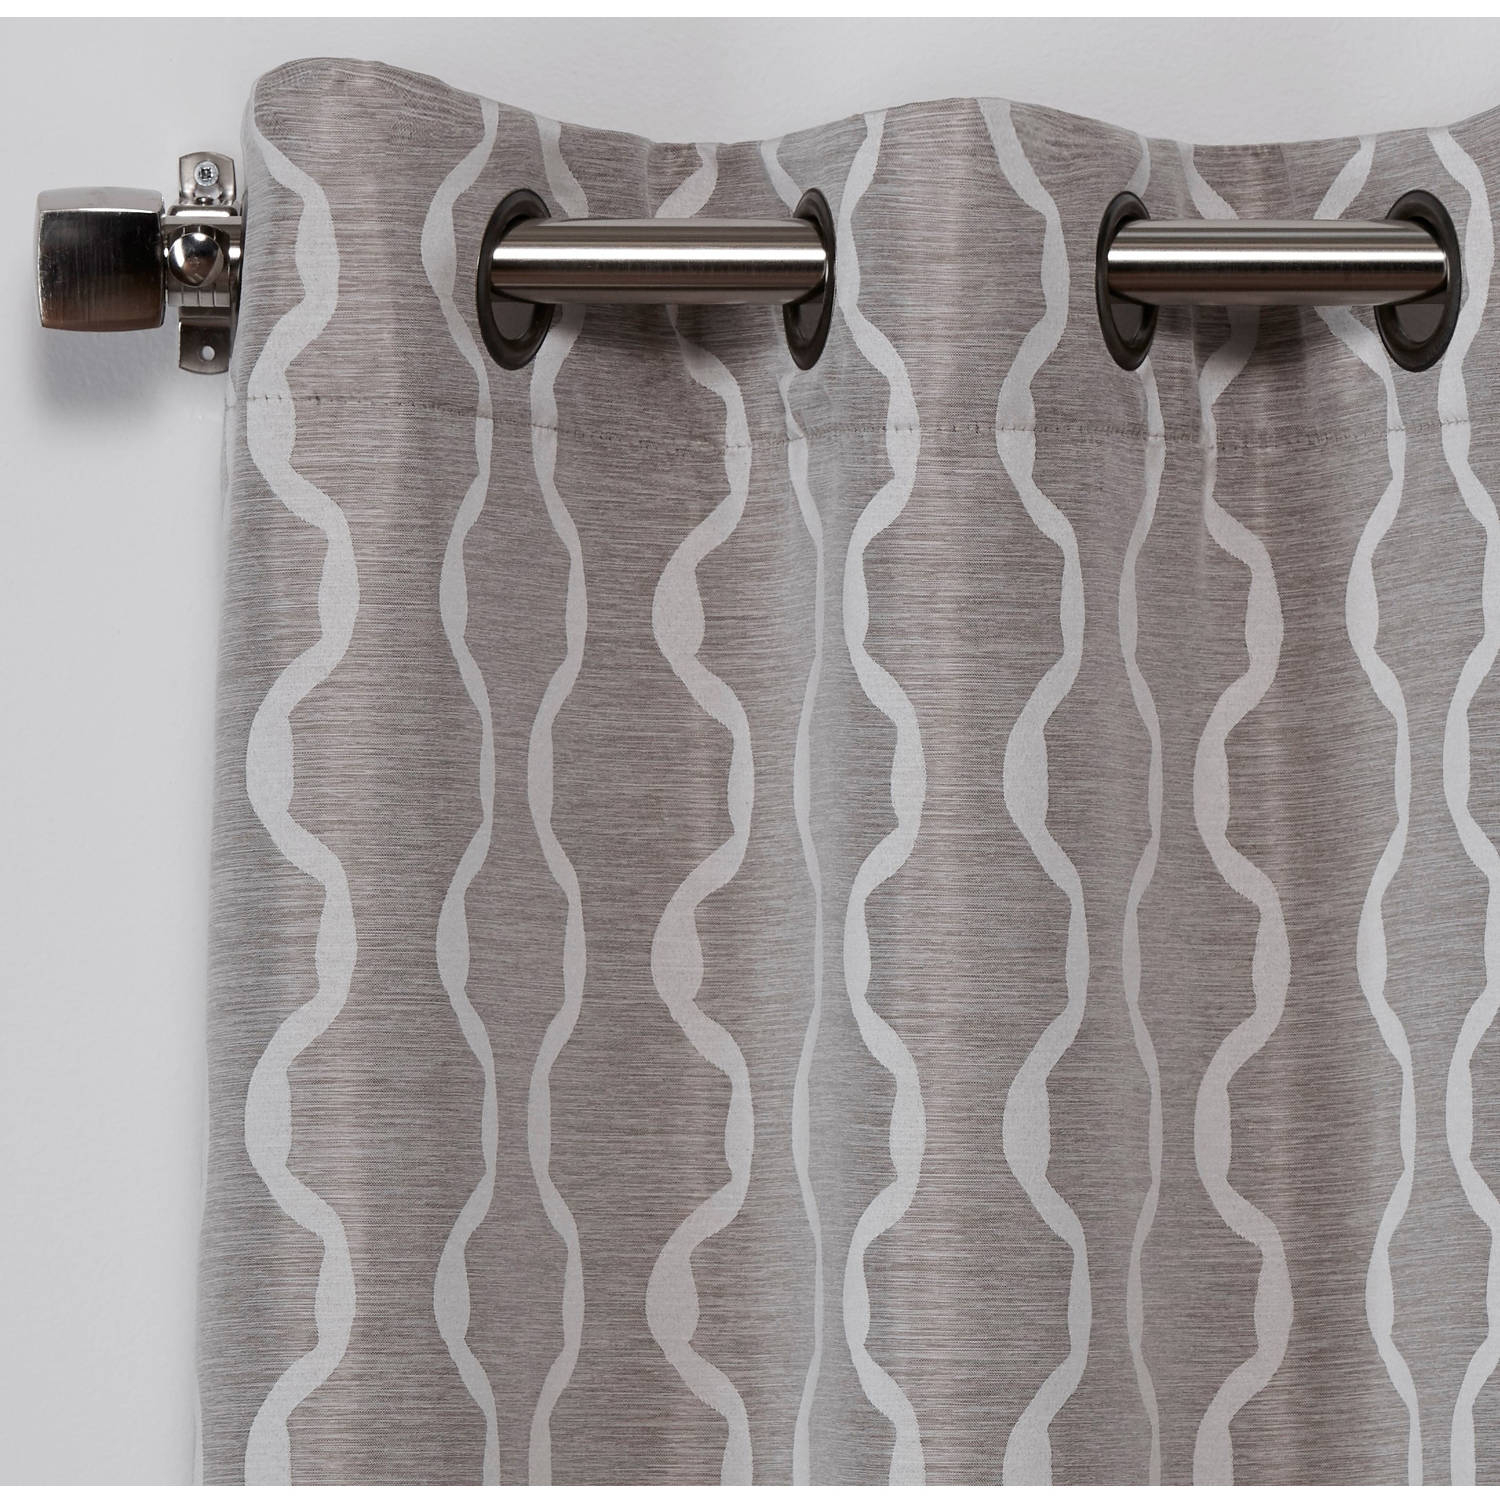 Exclusive Home Curtains 2 Pack Baroque Textured Linen Look Jacquard Grommet Top Curtain Panels With Baroque Linen Grommet Top Curtain Panel Pairs (View 3 of 20)